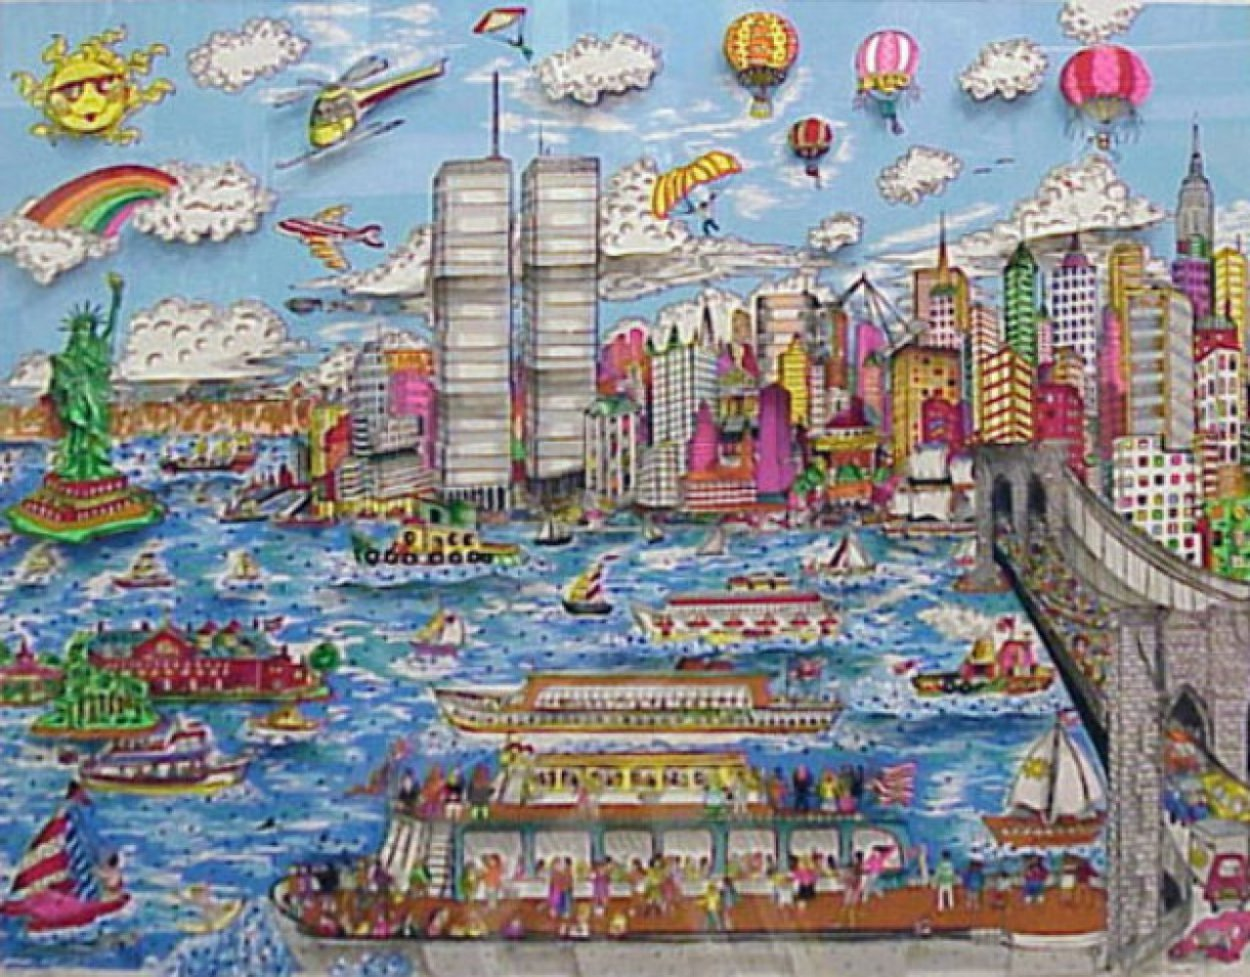 Gateway to New York   3-D 1987 Limited Edition Print by Charles Fazzino